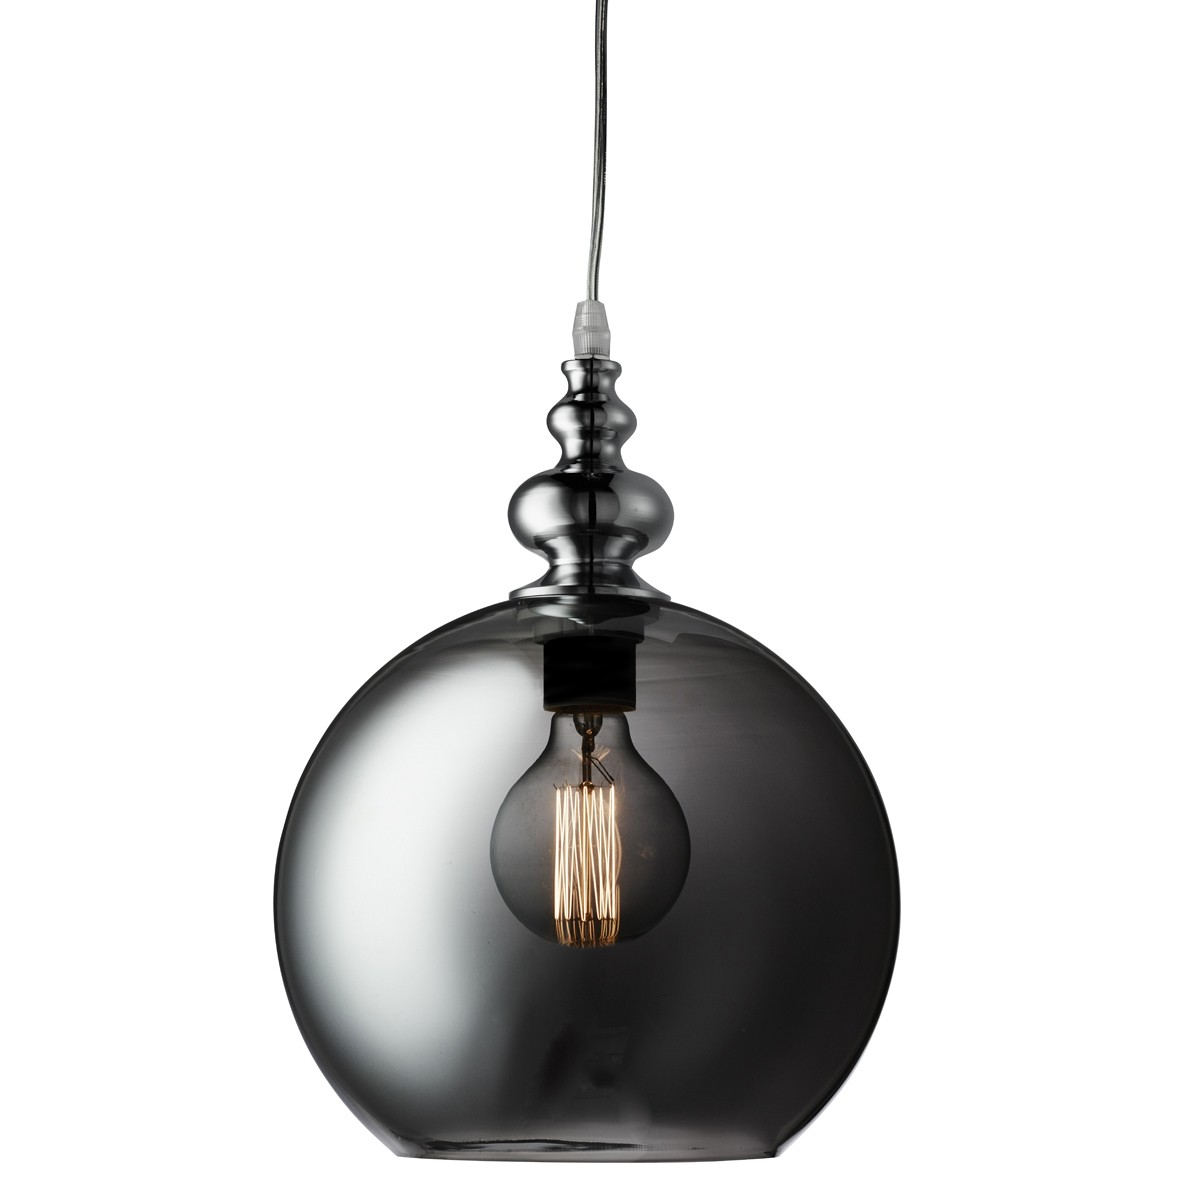 indiana chrome globe pendant light with smokey glass glade u2013 2020sm stanways stoves and stoves and lights - Globe Pendant Light